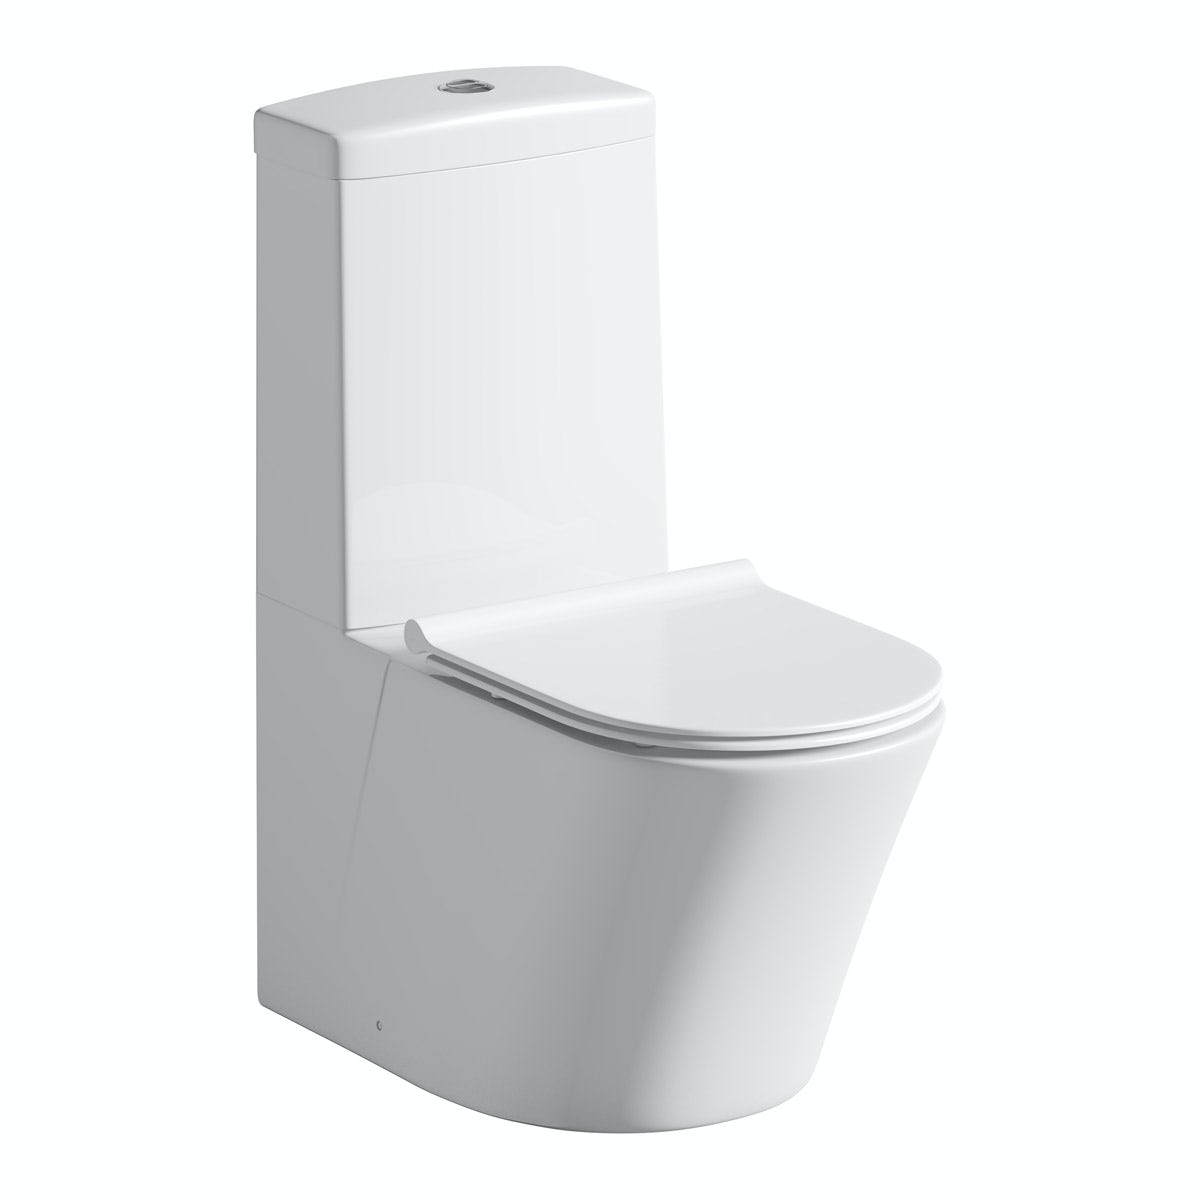 Mode Tate close coupled toilet inc slim soft close seat with pan connector